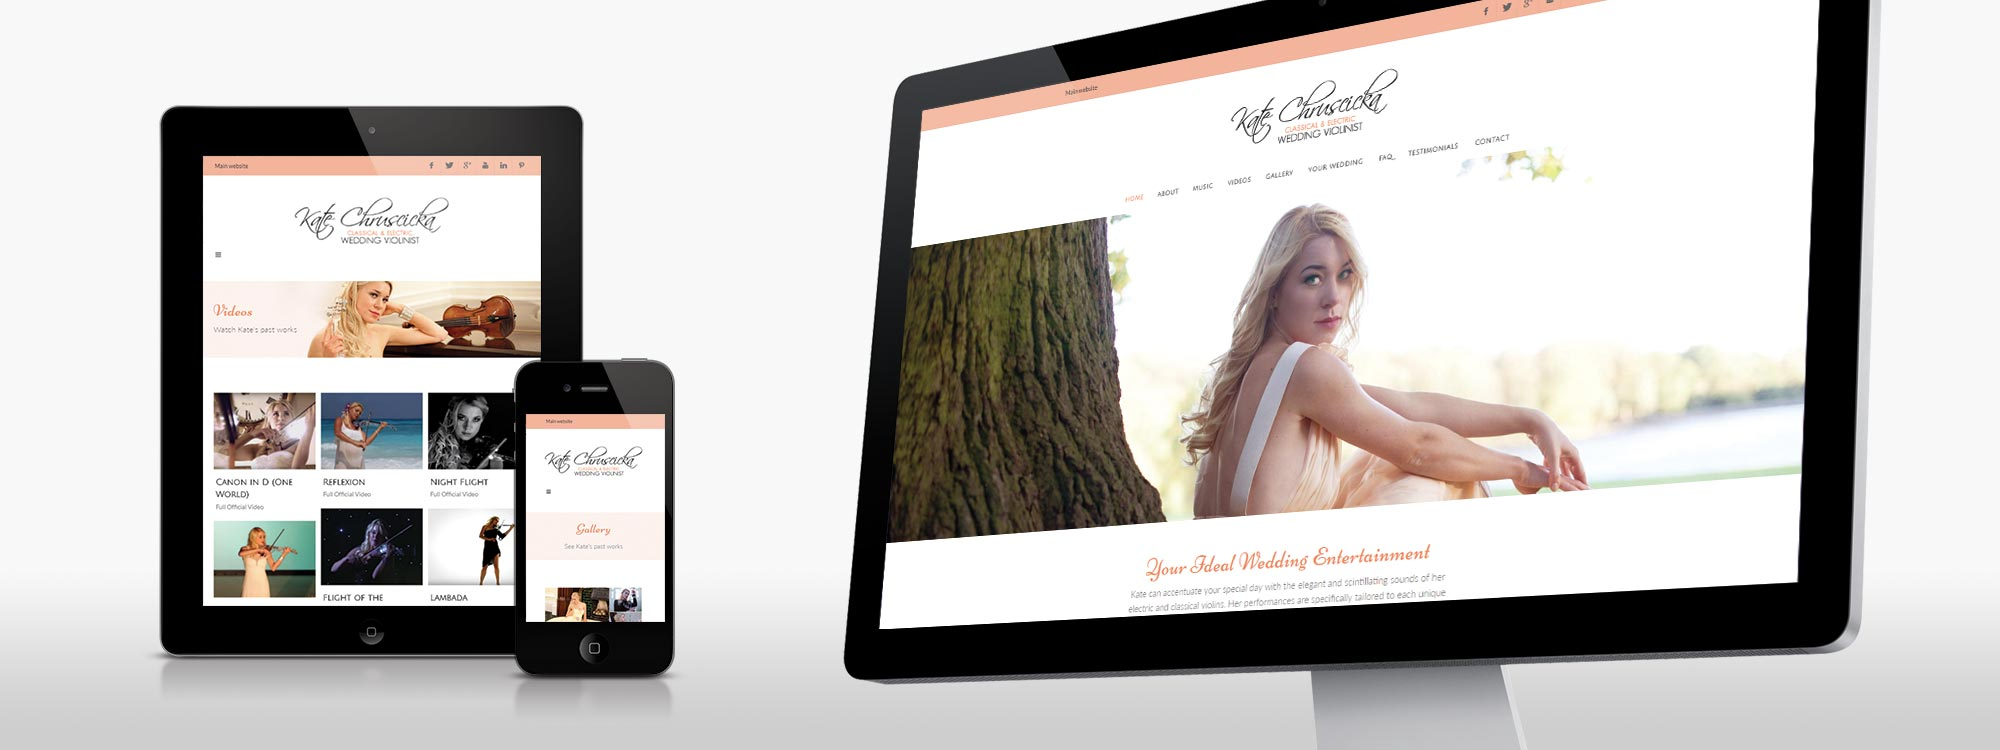 Kate Chruscicka Wedding Violinist Website